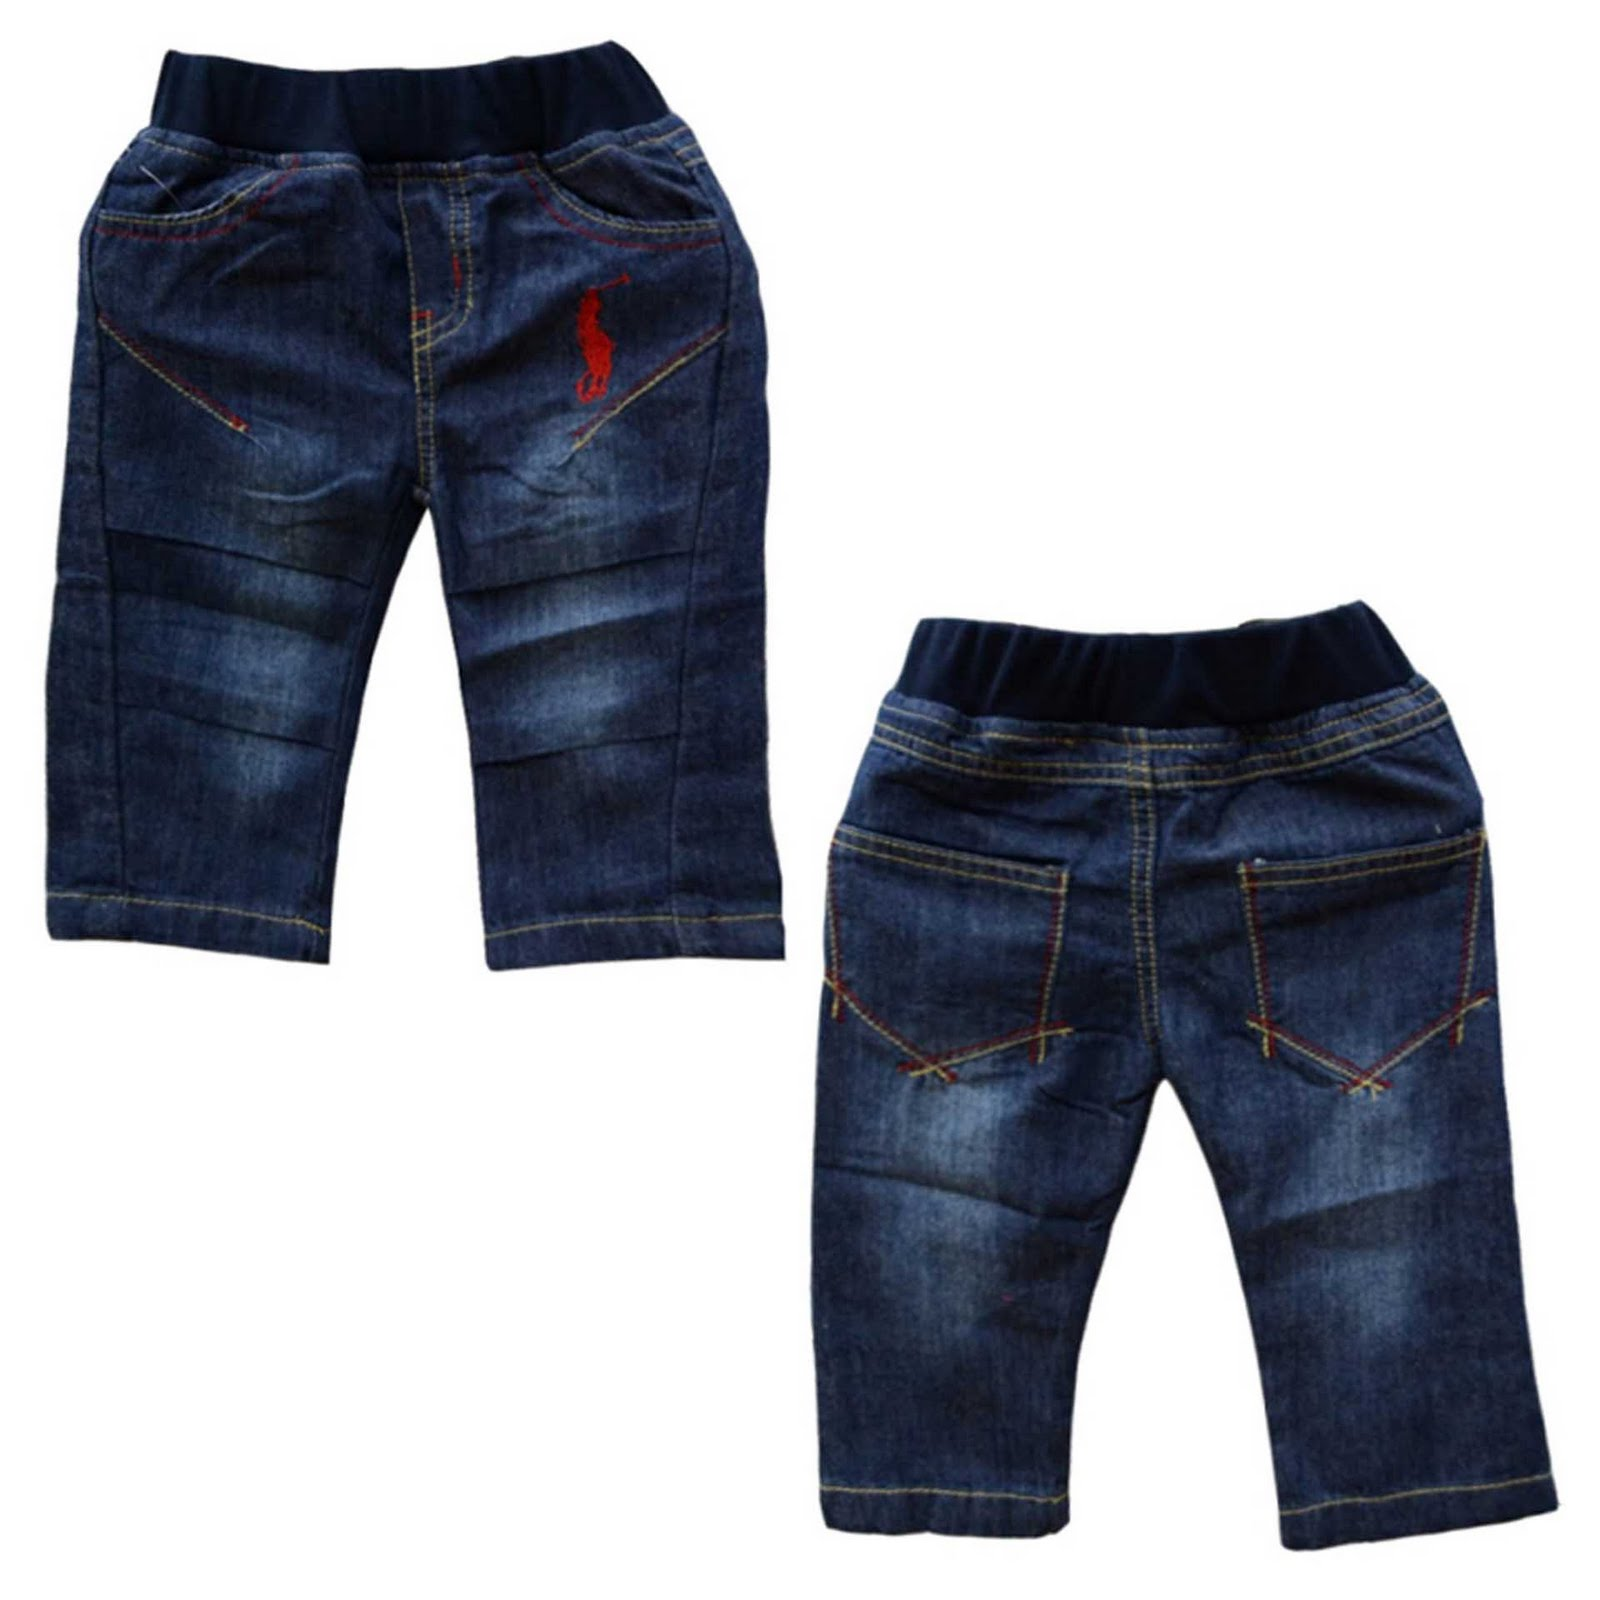 baby ku cute collections ready stock polo jeans. Black Bedroom Furniture Sets. Home Design Ideas